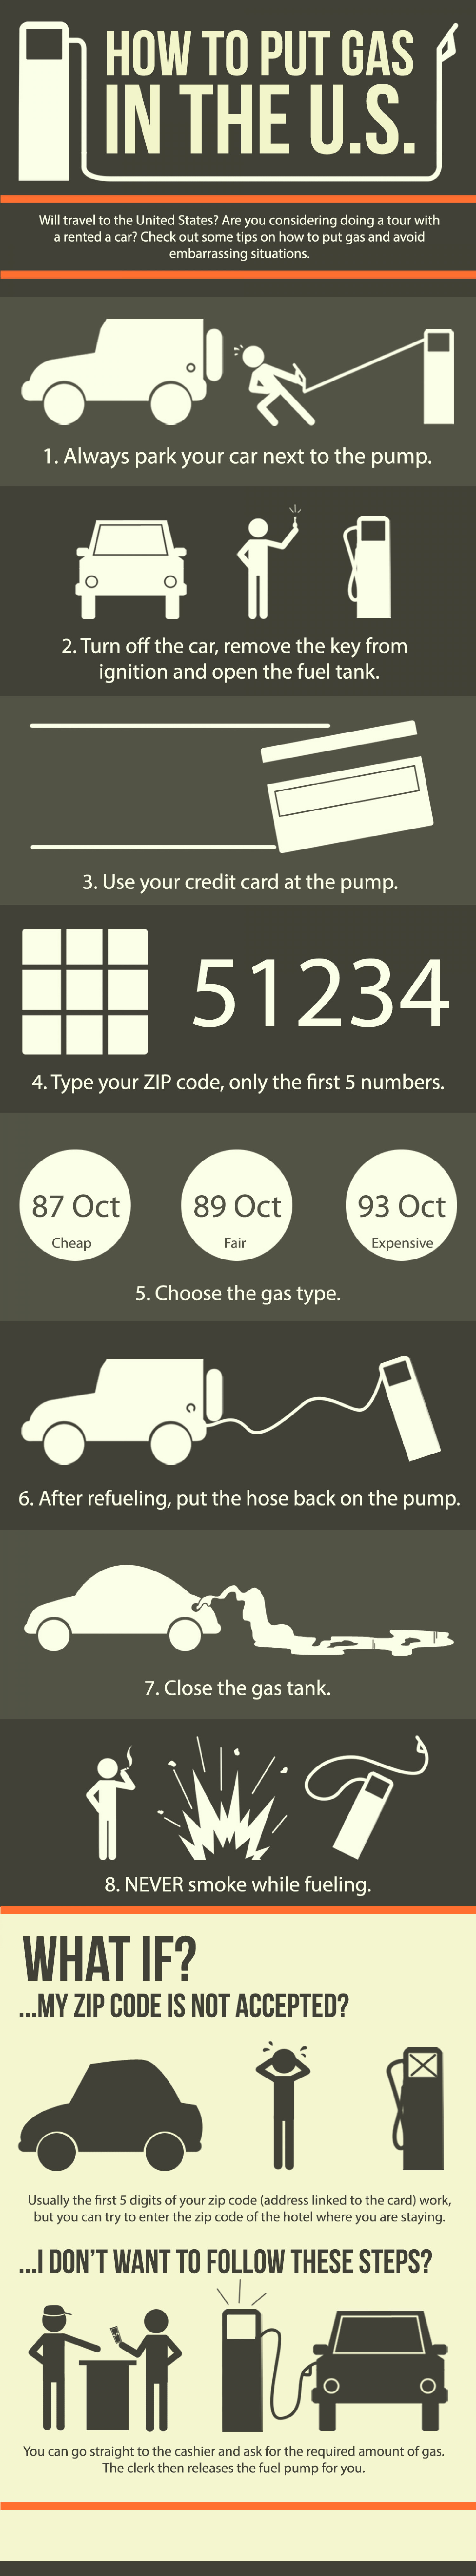 How to Fill Your Car with Gas in the US Infographic